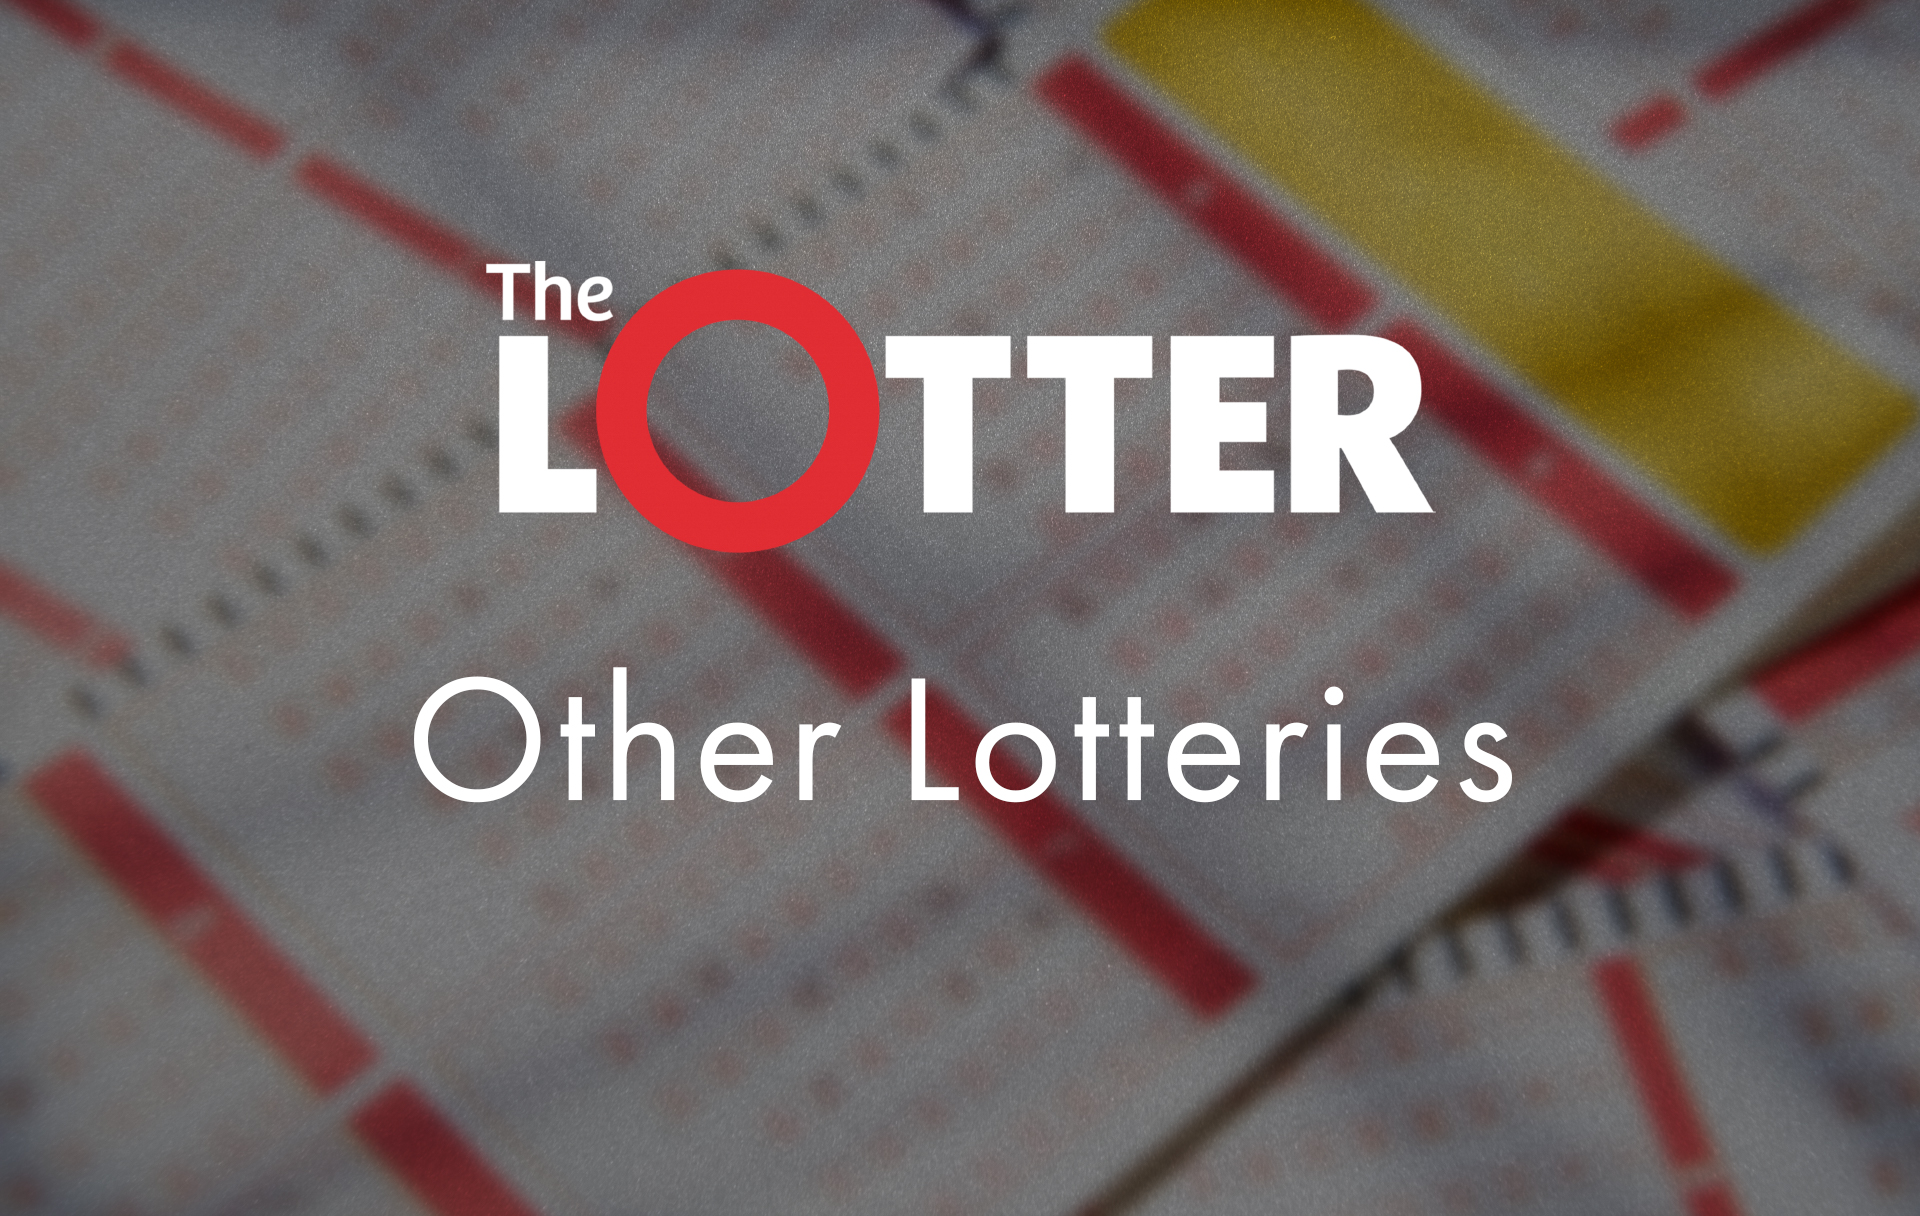 Among the list of lotteries, you can find ones from Europe, South and North America, Asia, and Africa.